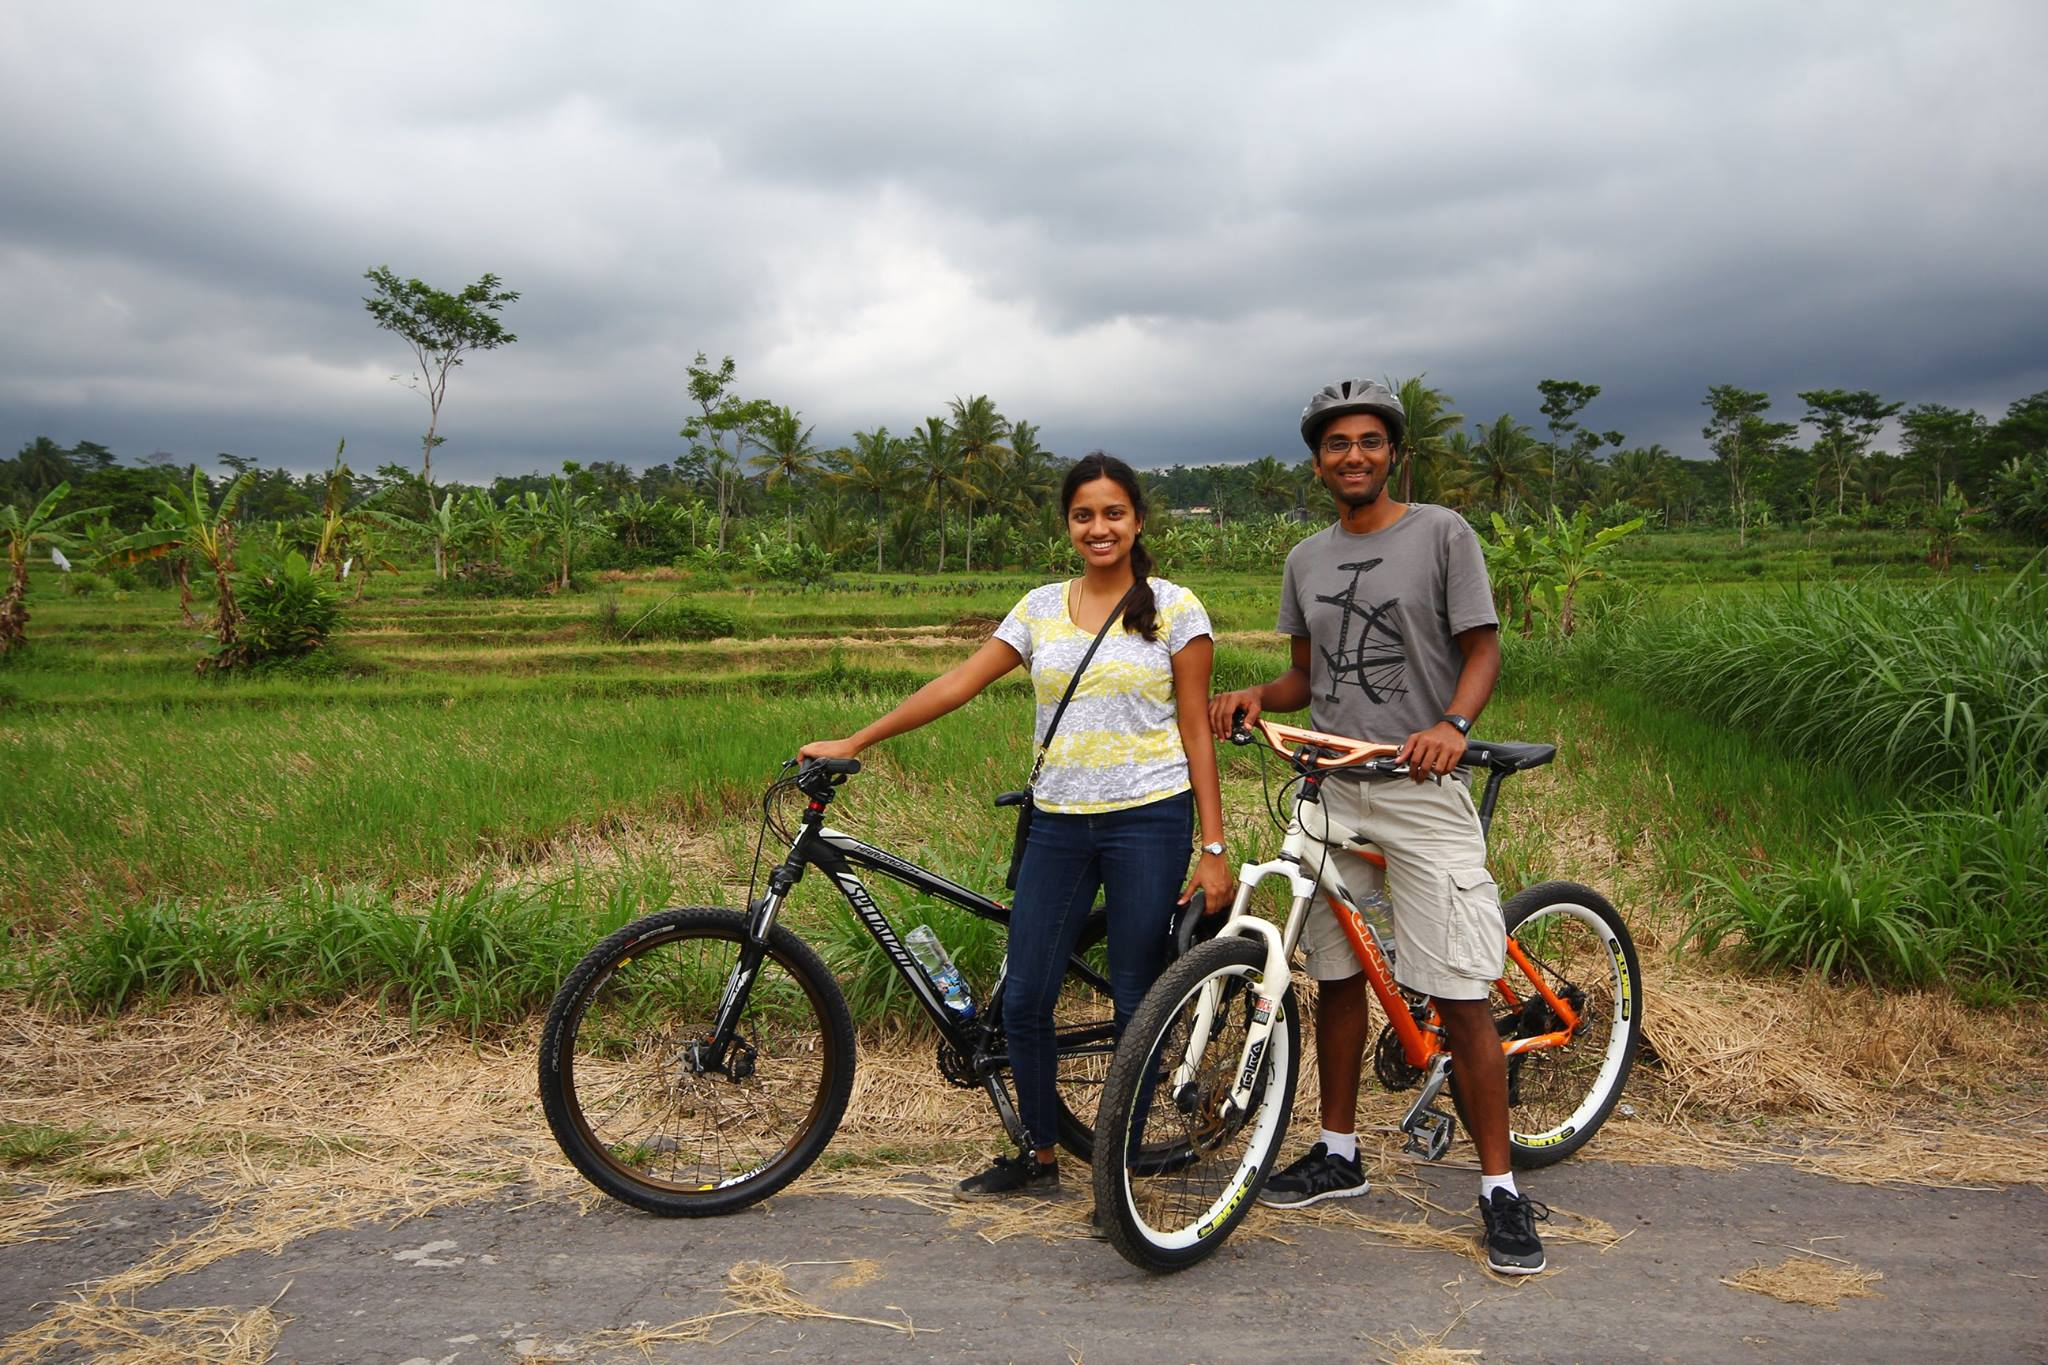 Cycling through the rice fields and villages of Java, Indonesia